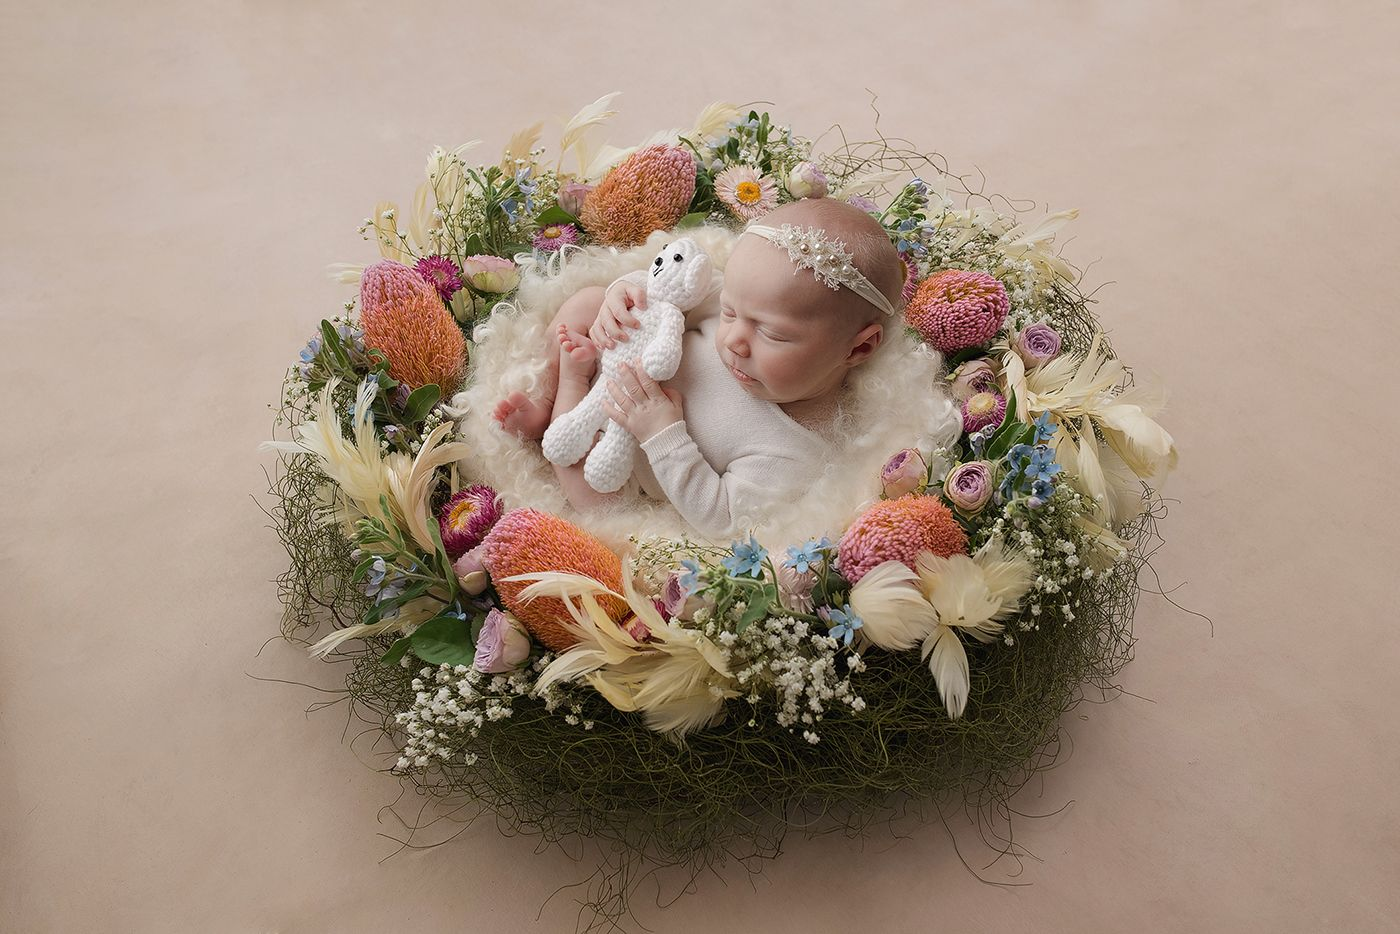 baby girl lying in a floral nest in a photography studio in Perth, Western Australia